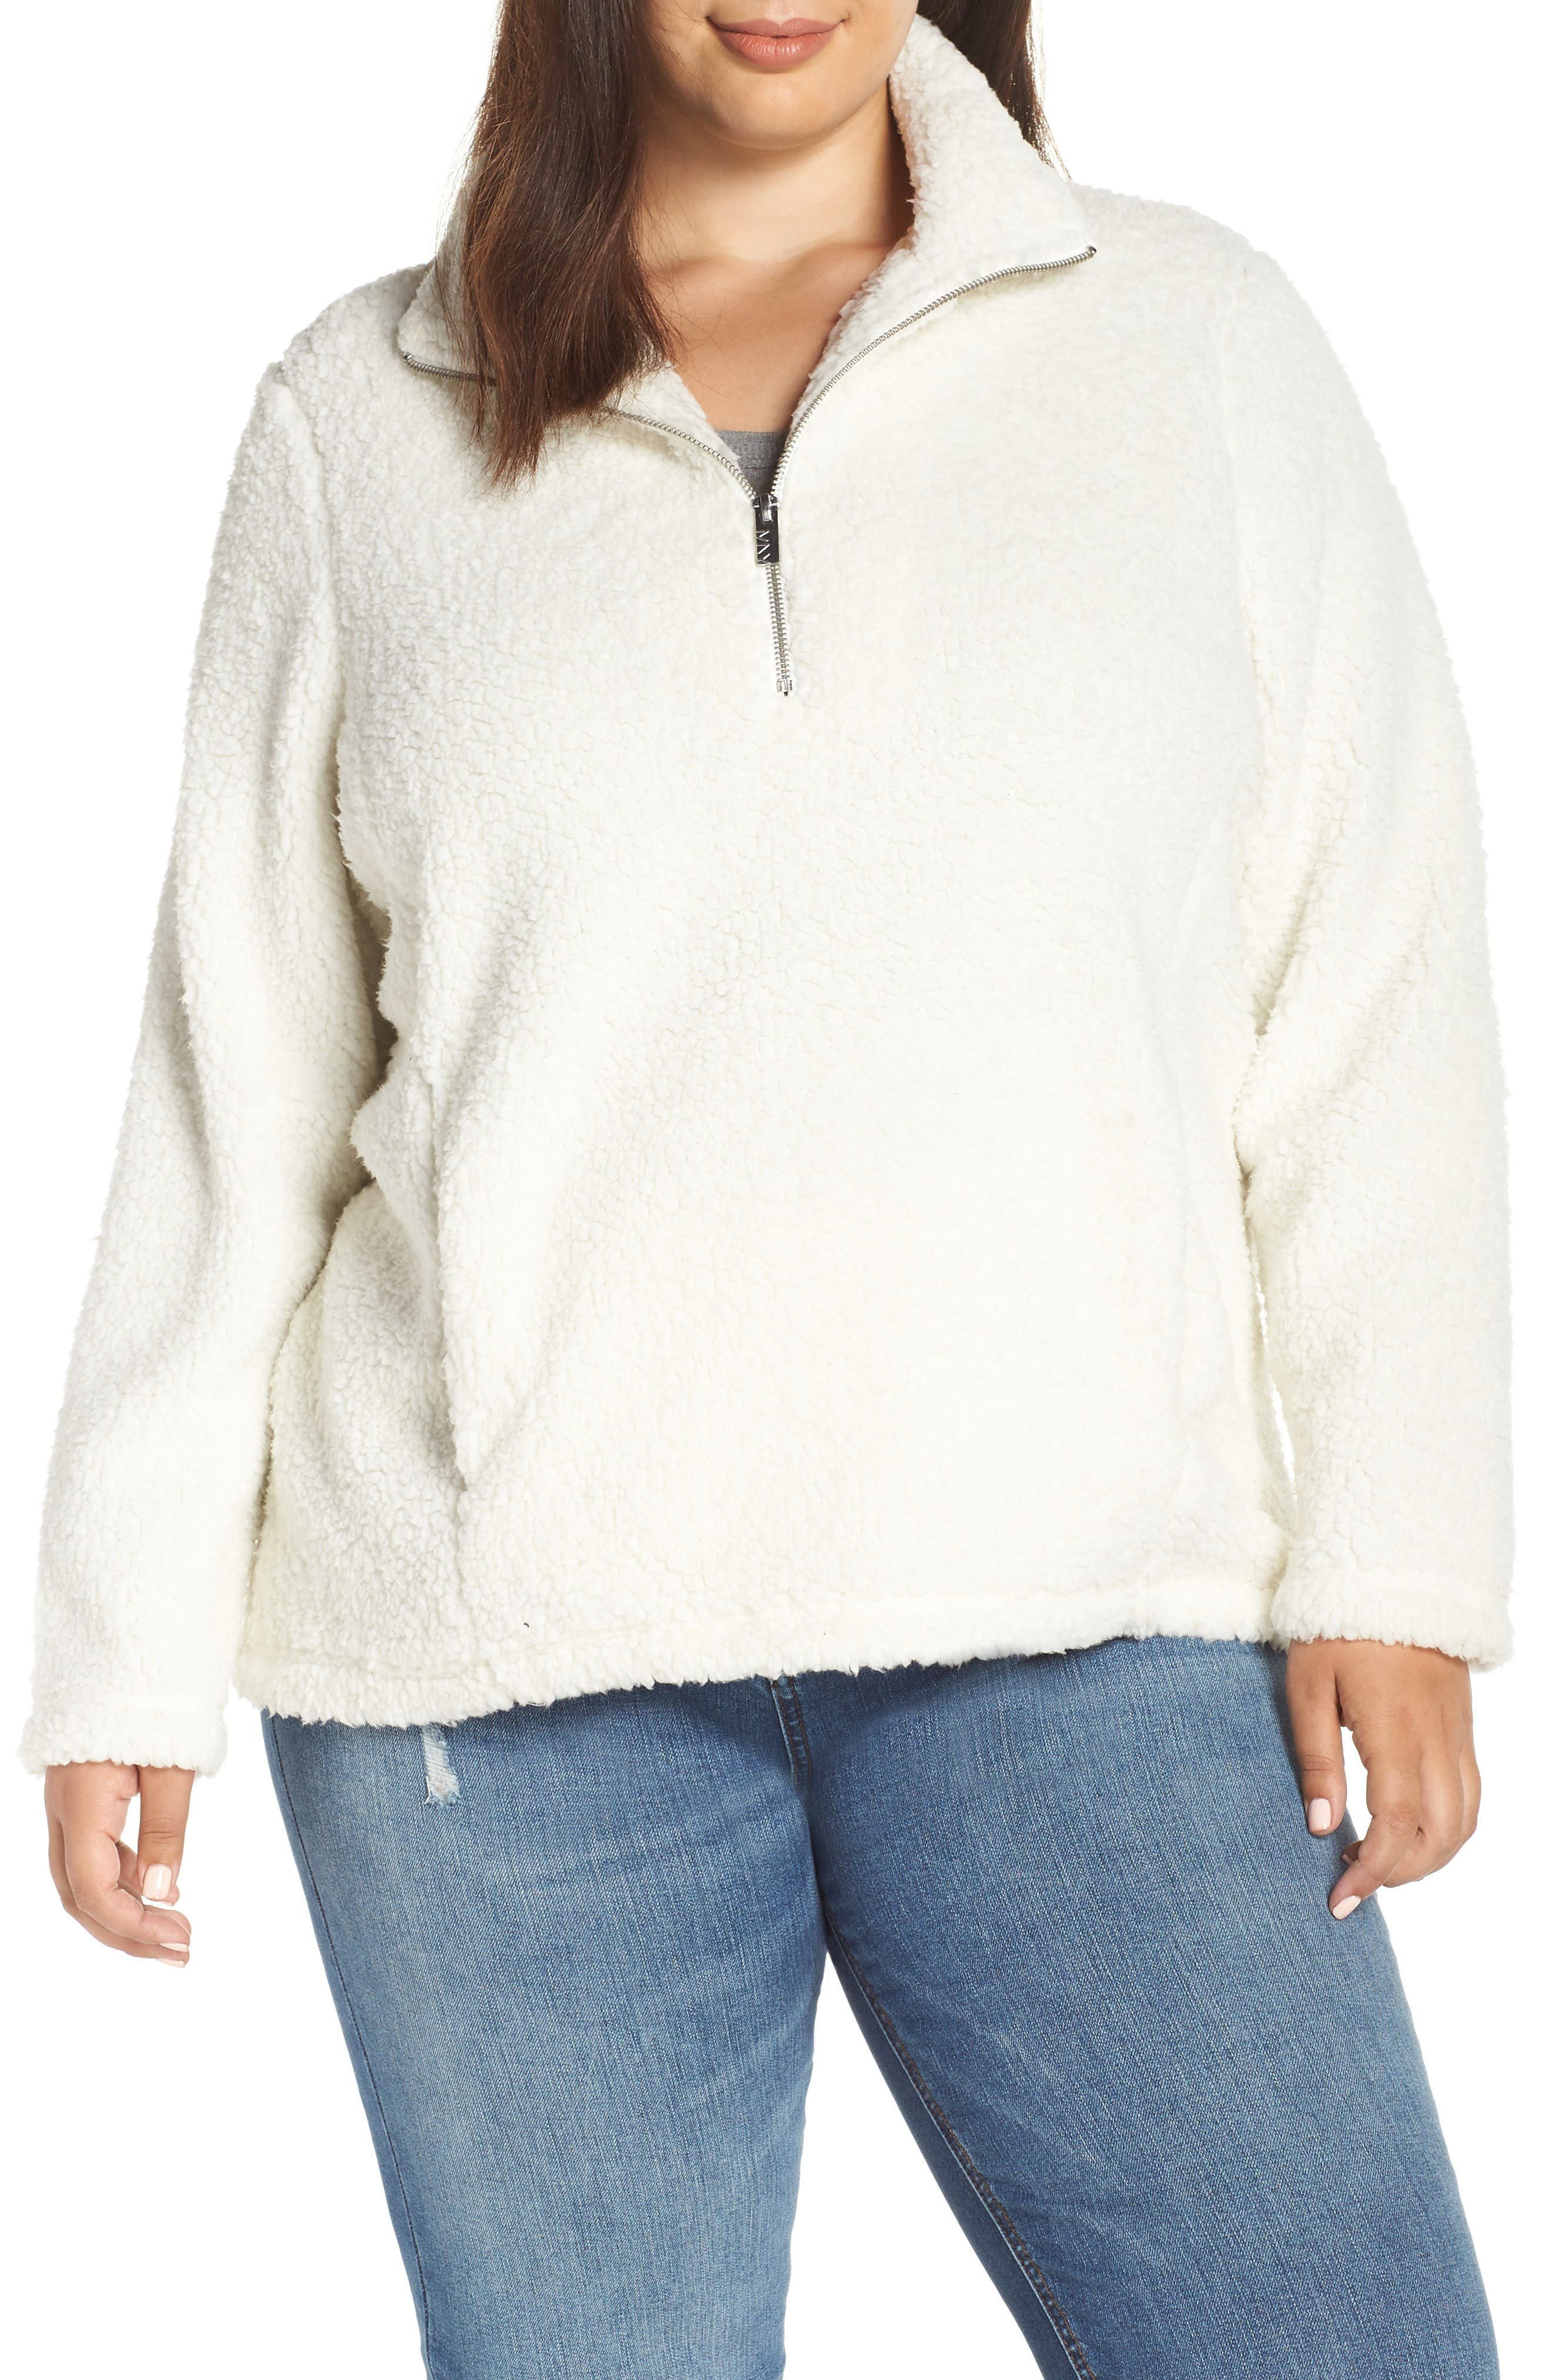 Teddy Fleece Quarter Zip Jacket,                             Main thumbnail 1, color,                             900